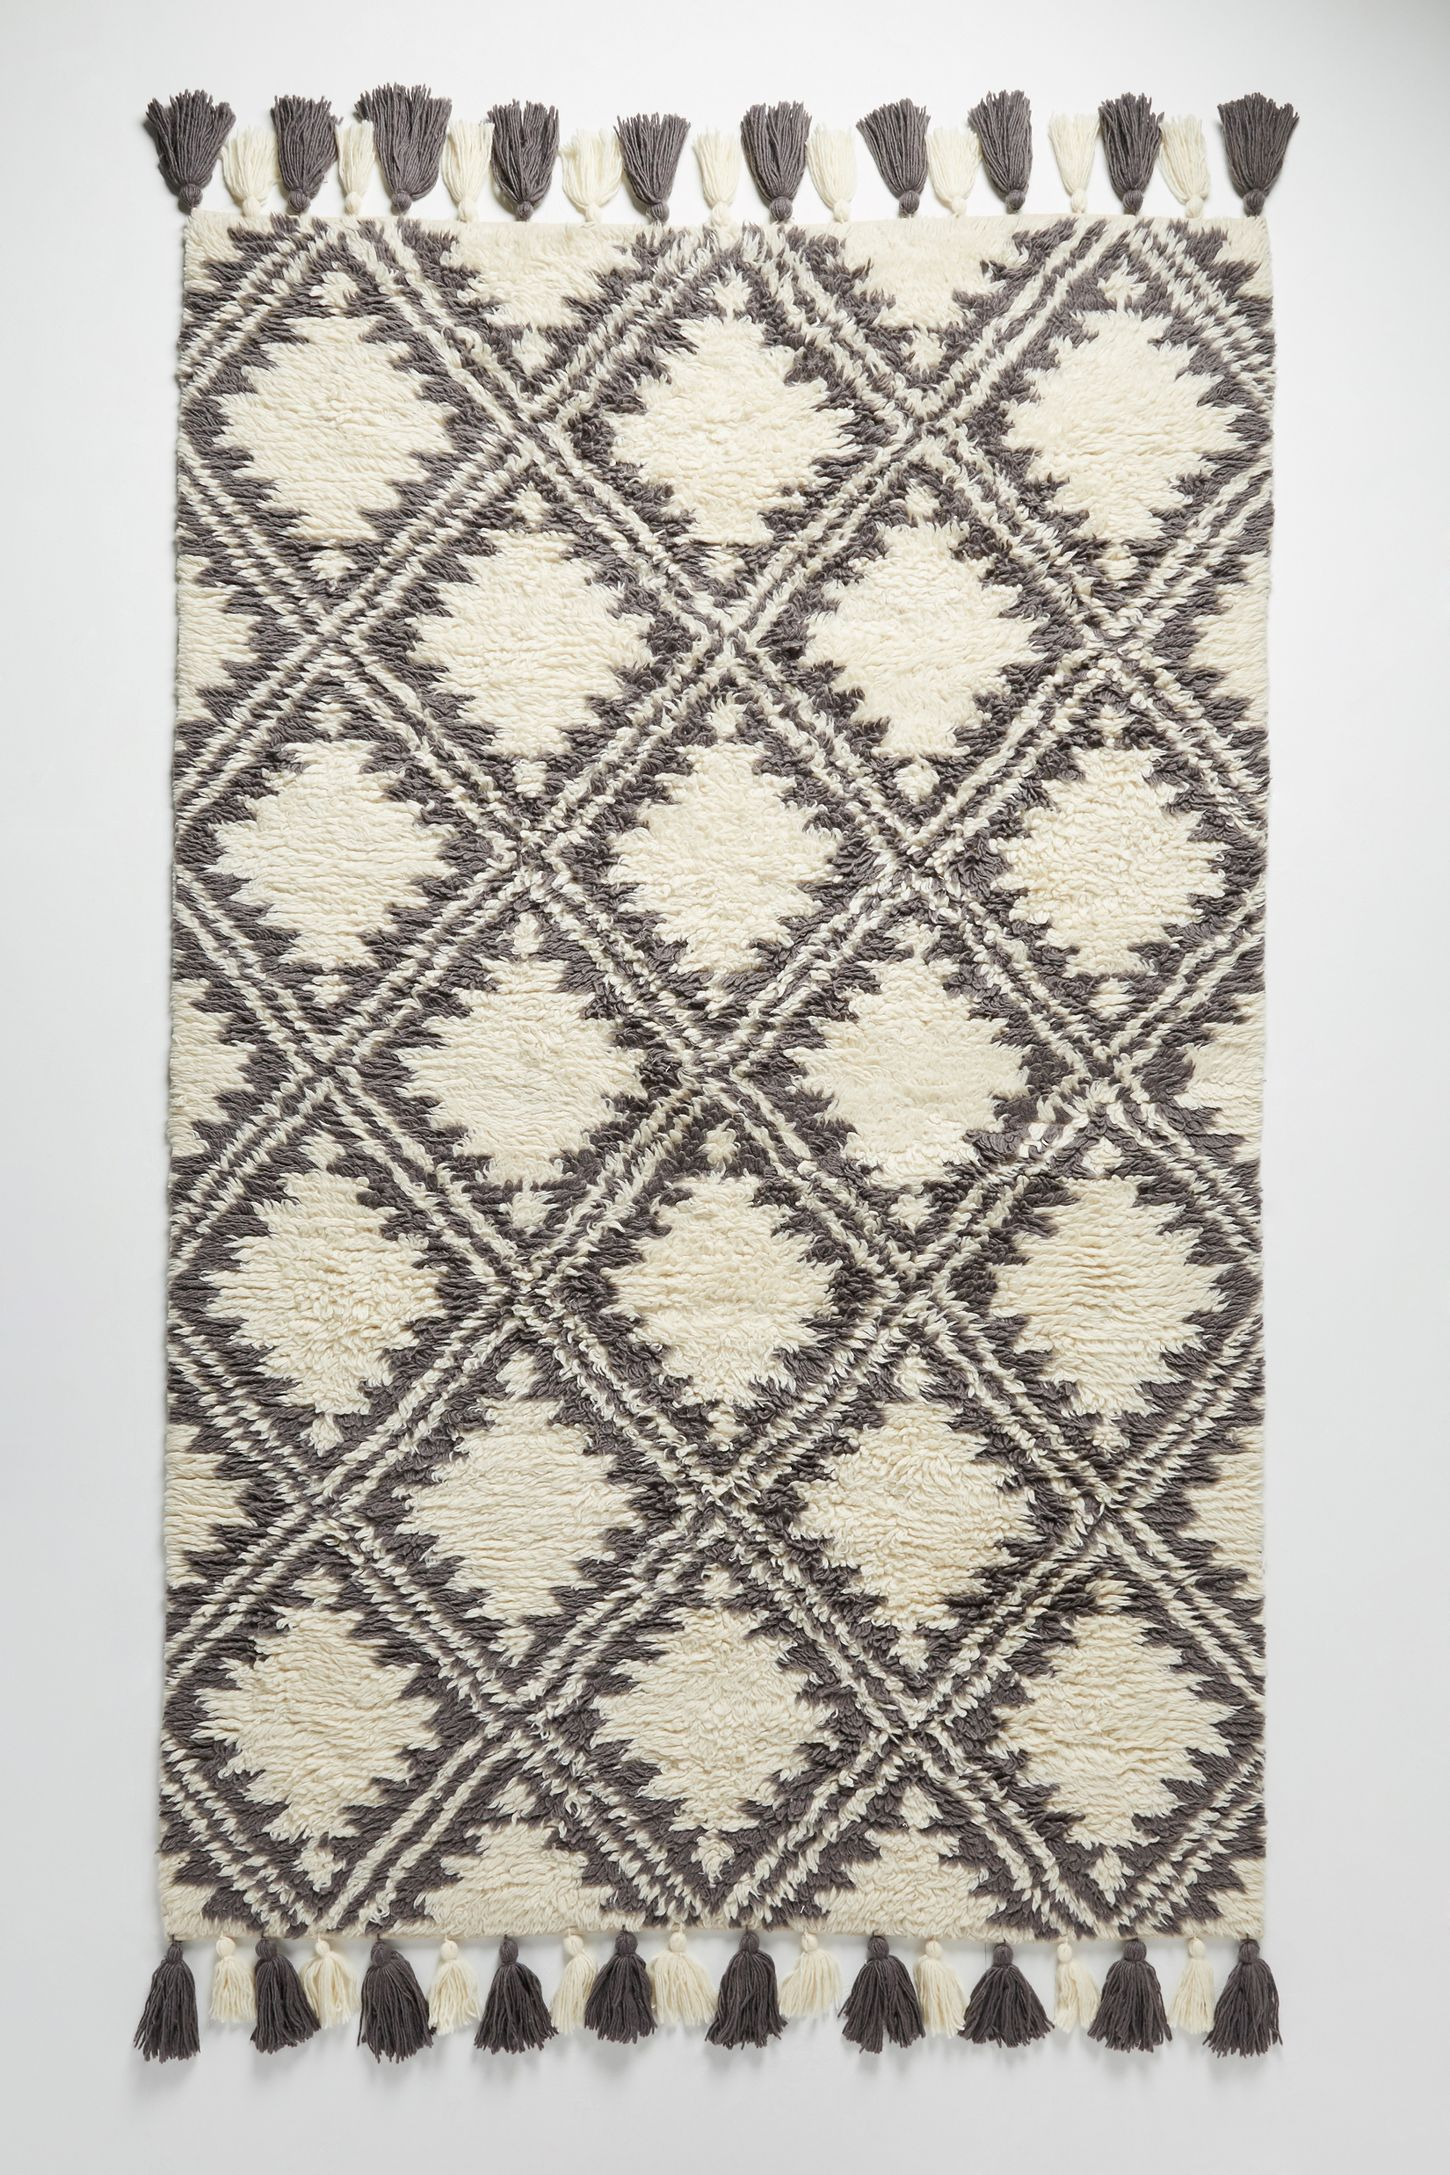 Essa Rug from anthropologie tassels on ends black and white diamond moroccan print